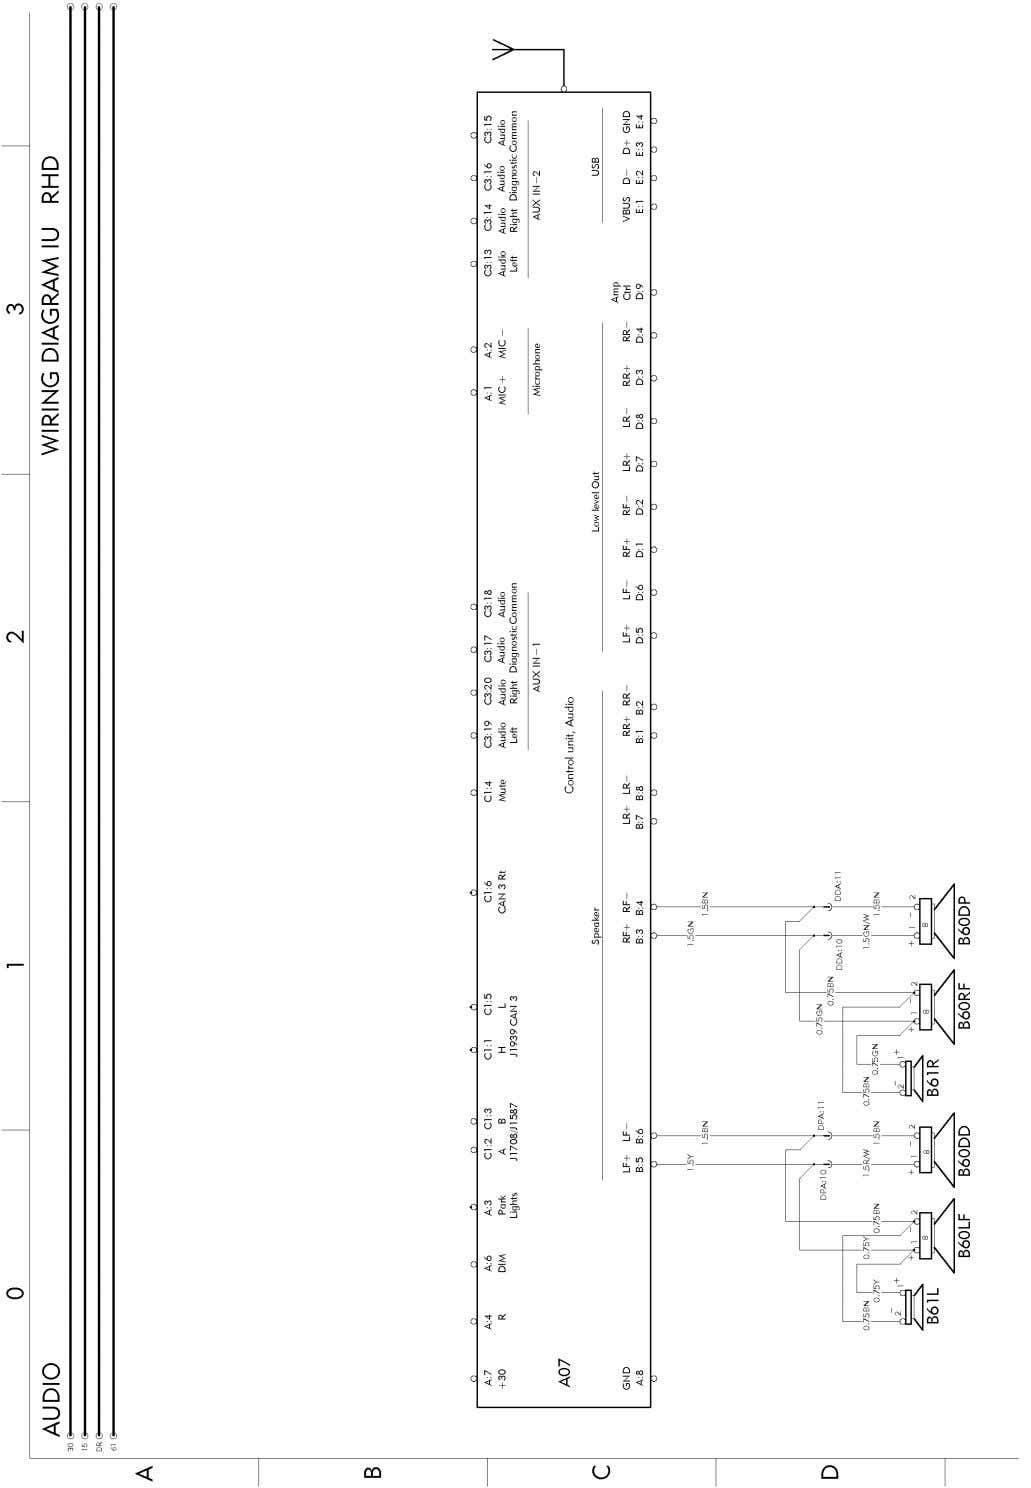 T3021483 Wiring diagram Page 99 (298)